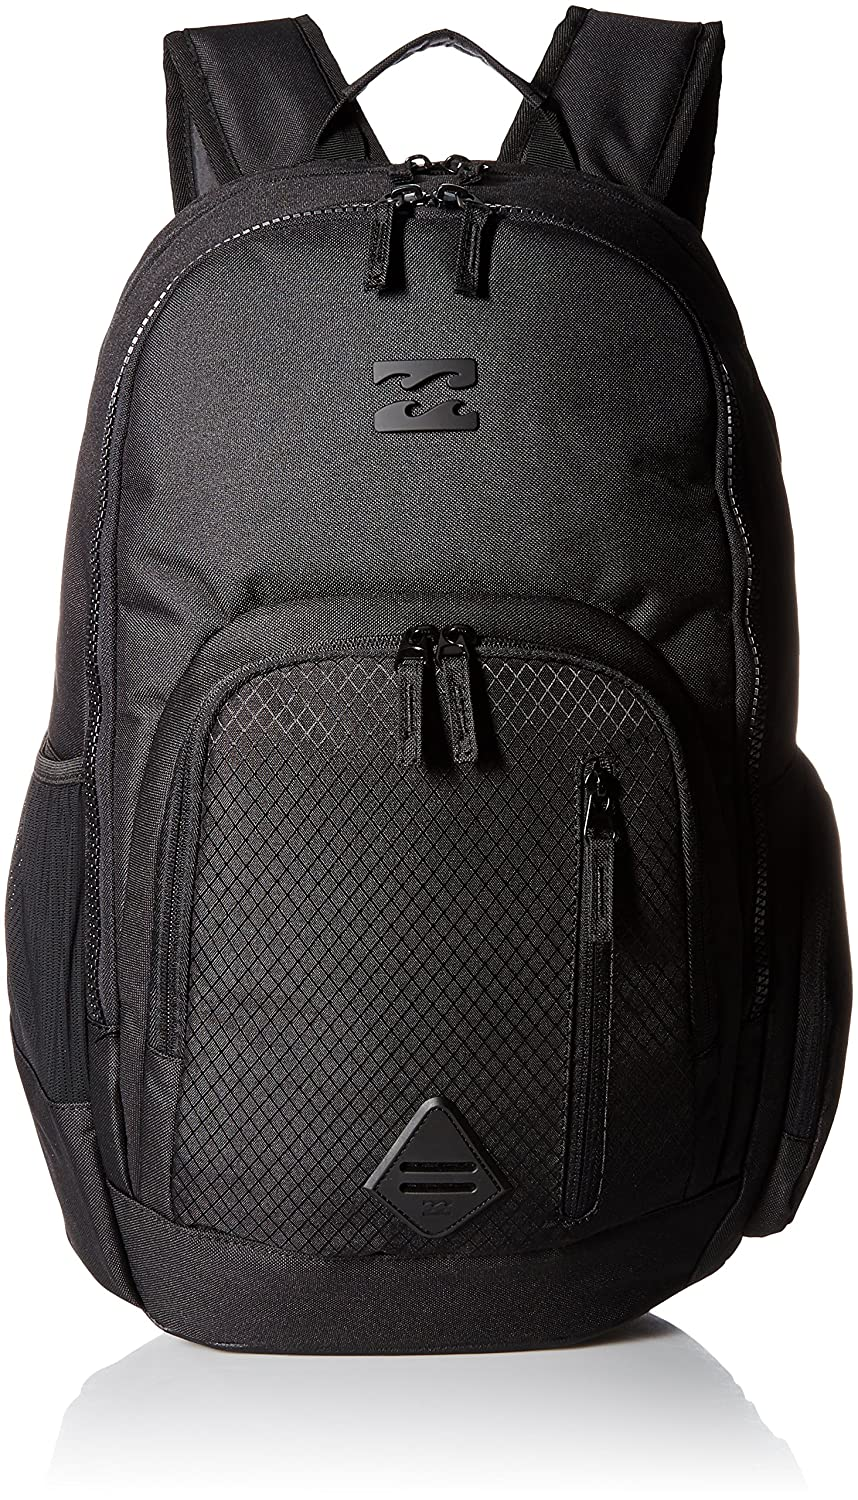 56c2c40d9a9 Amazon.com: Billabong Men's Classic School Command Backpack, Stealth Black,  One Size: Clothing